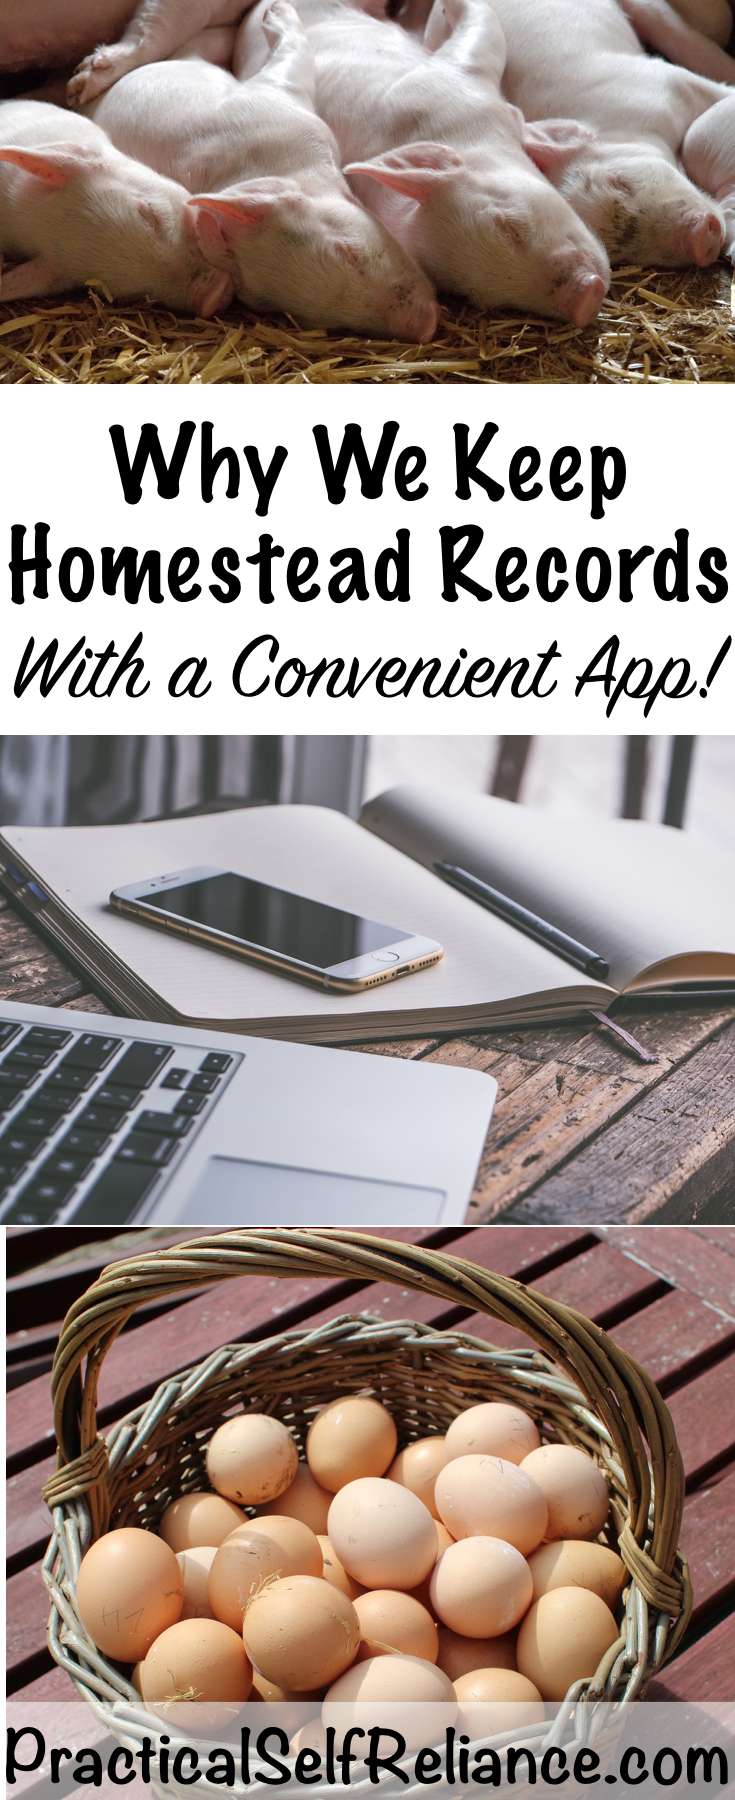 Why We Keep Homestead Records #homestead #homesteading #selfsufficiency #selfreliant #preparedness